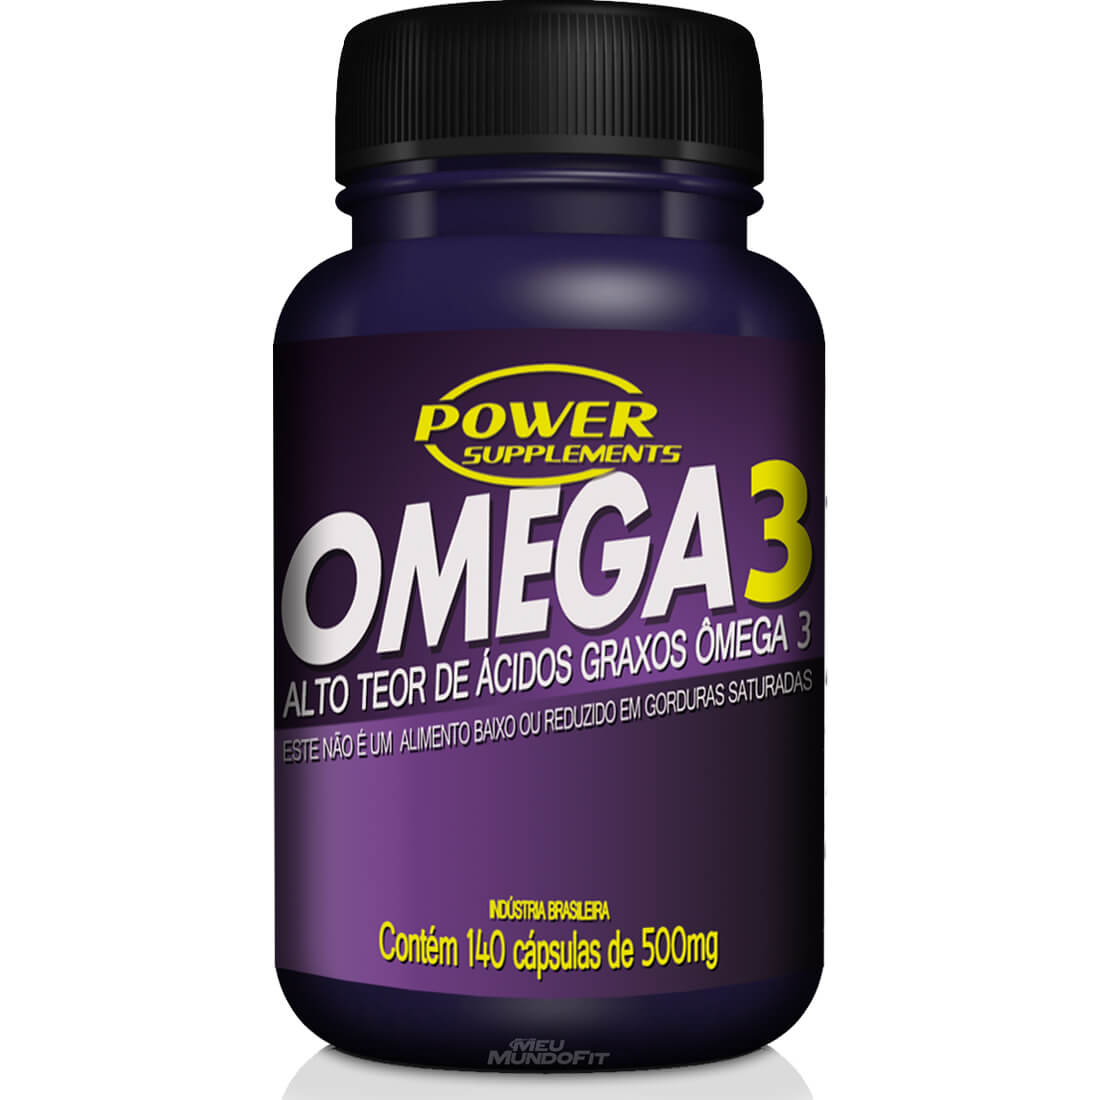 OMEGA 3 140 CAPSULAS - POWER SUPPLEMENTS